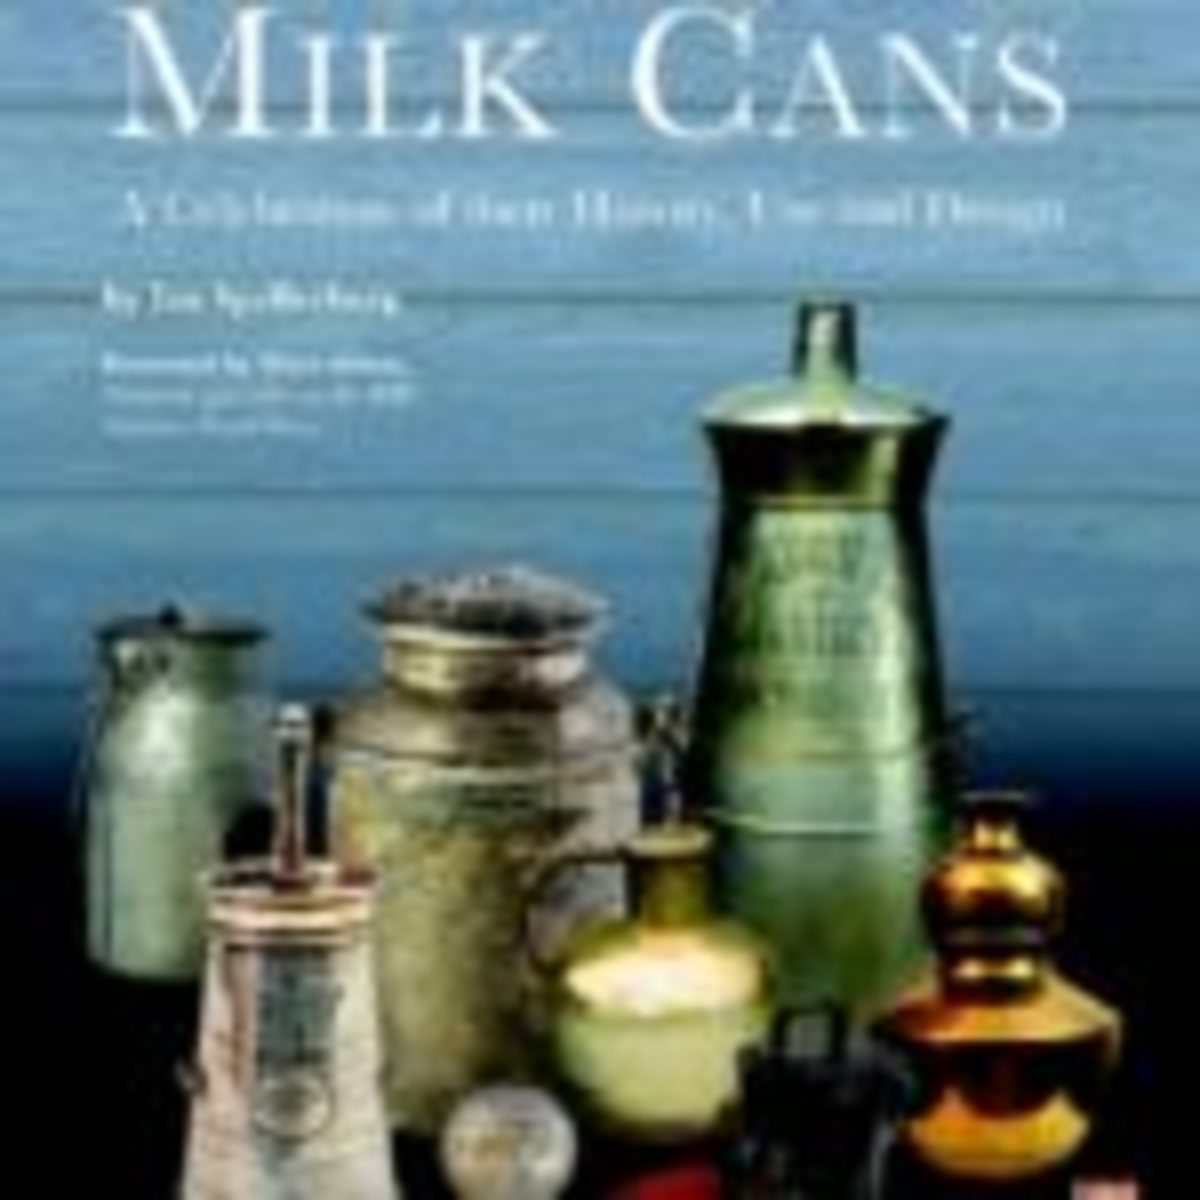 Ian Spellerberg, Milk Cans: A Celebration of their History, Use, and Design, Appley Valley, Minn.: Astragal Press, a division of Rowman & Littlefield, 2018. https://bit.ly/2JMjc2W